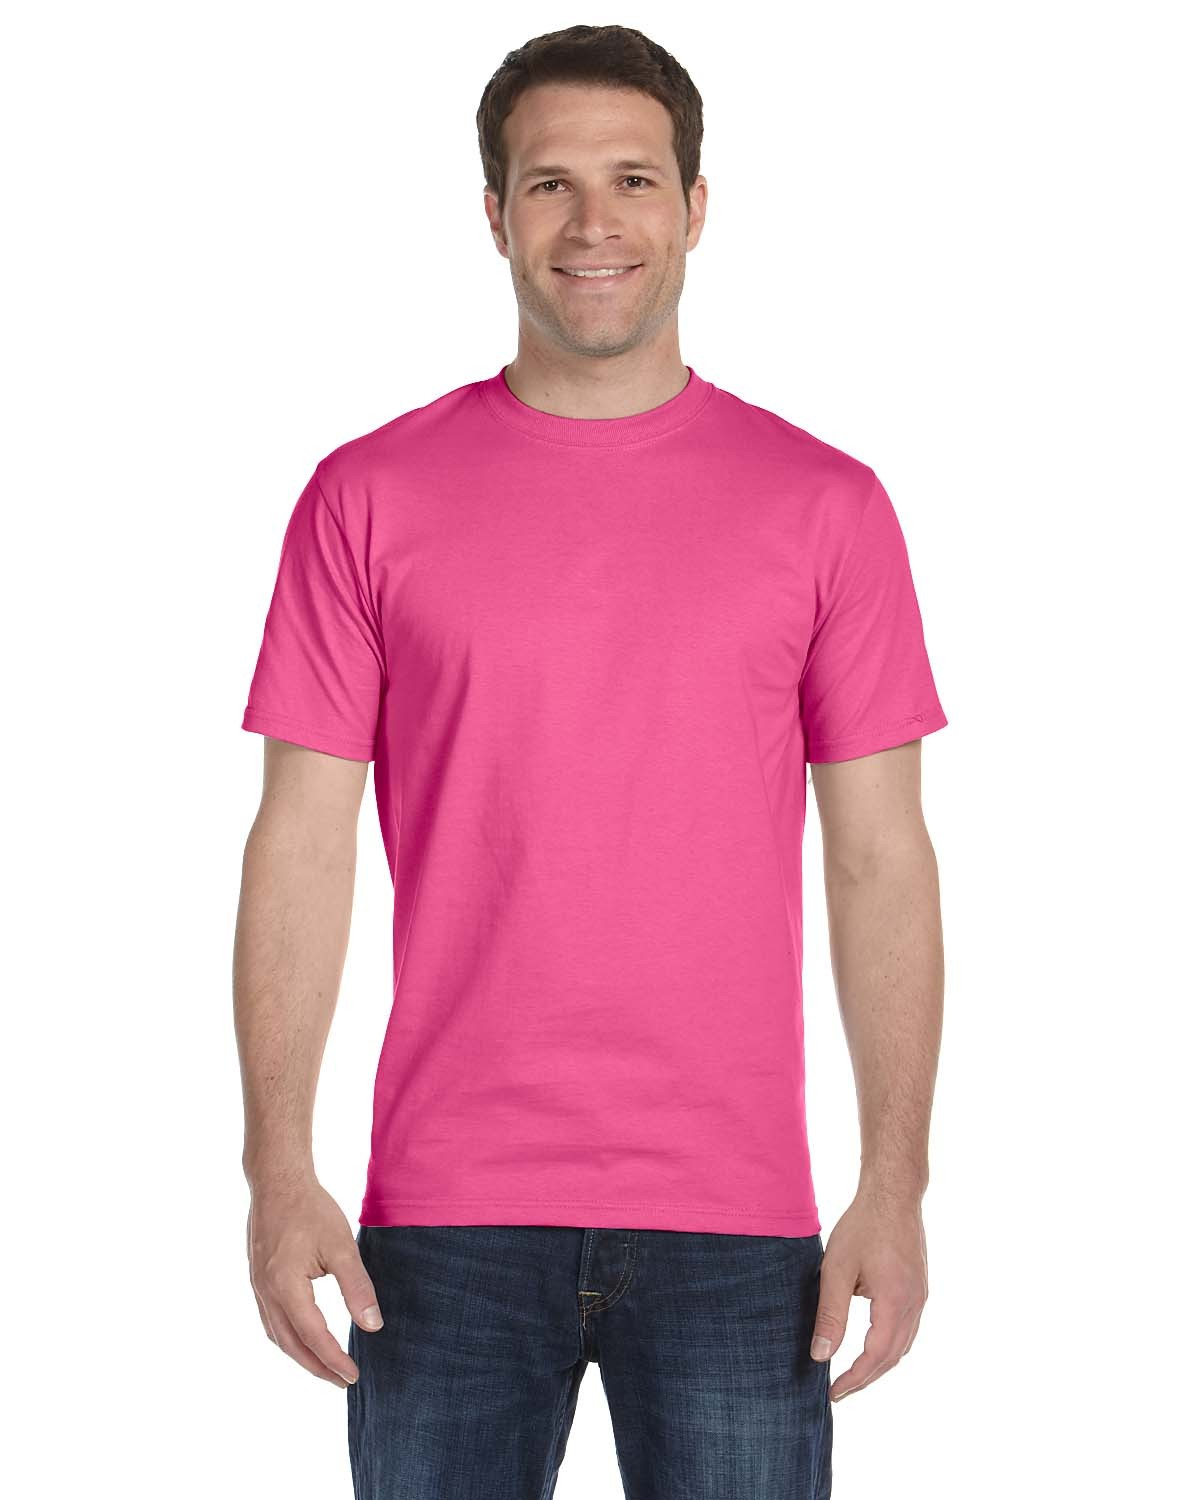 5180 Hanes WOW PINK